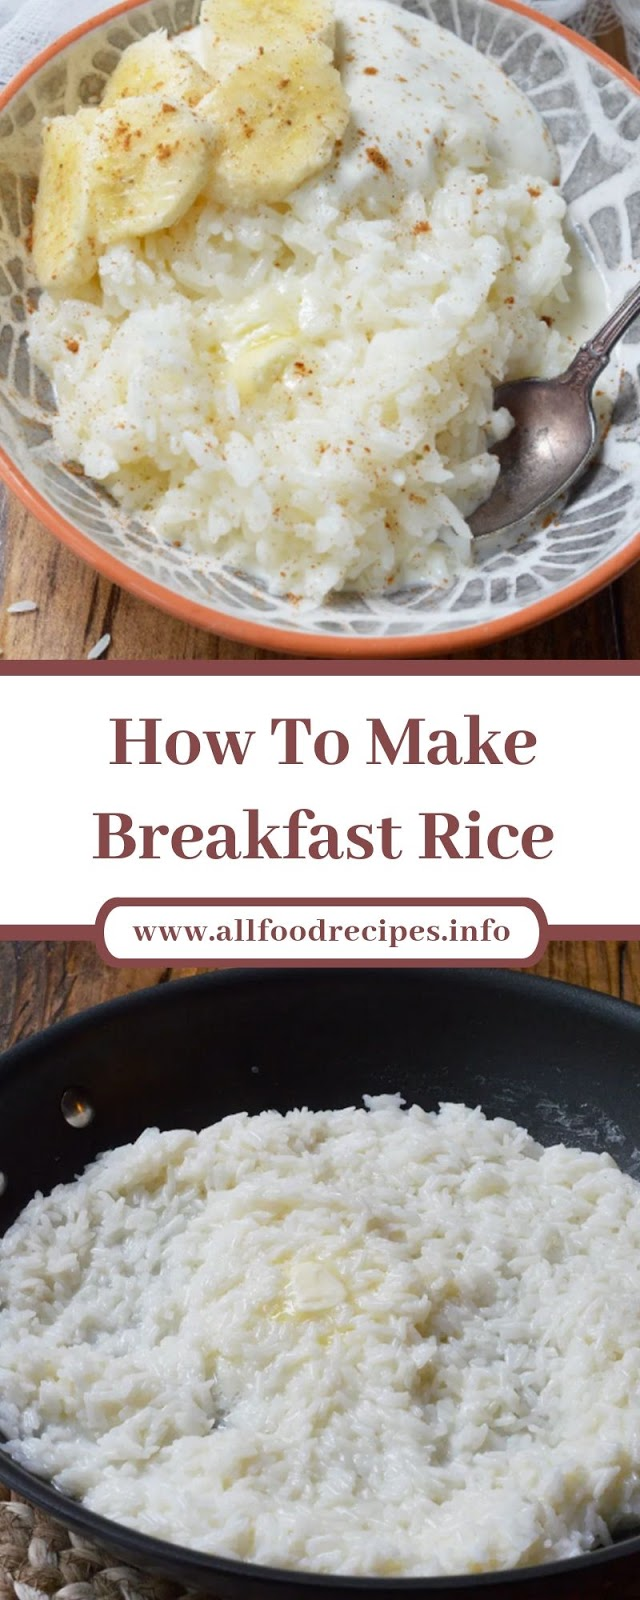 How To Make Breakfast Rice